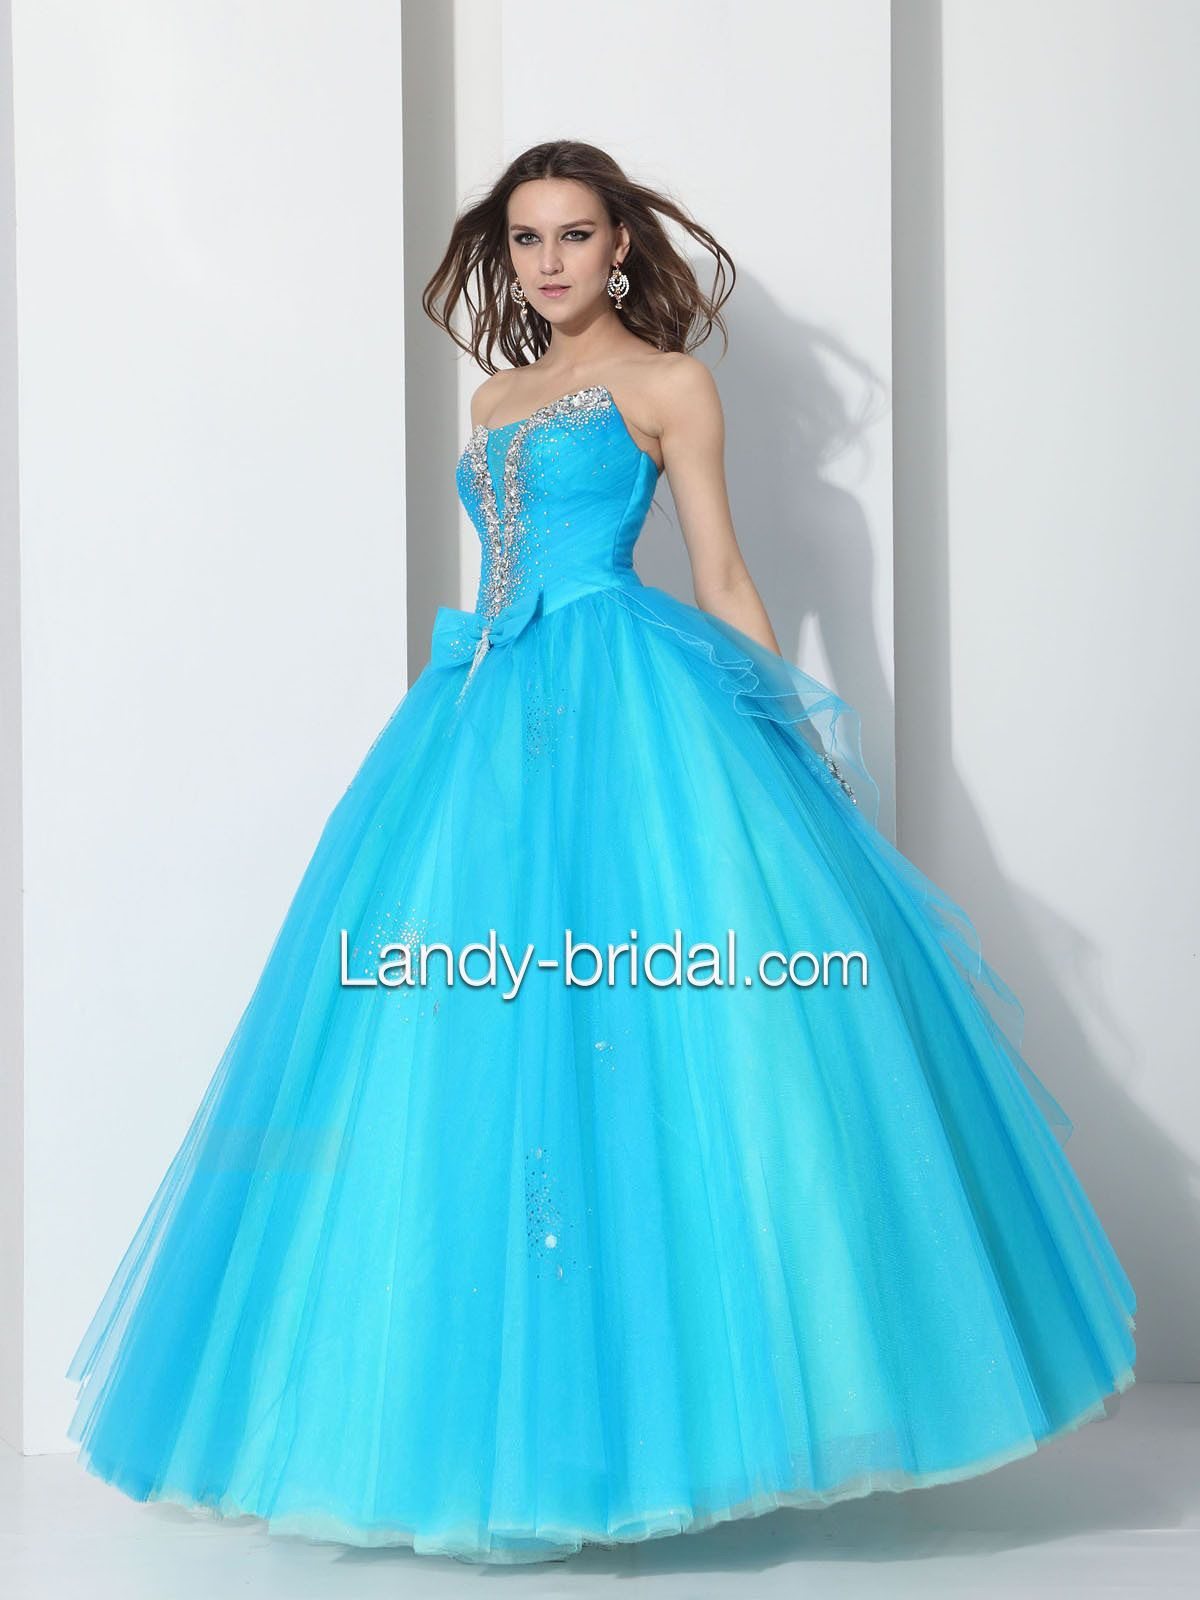 beautiful, diamonnds, dress, great, princess